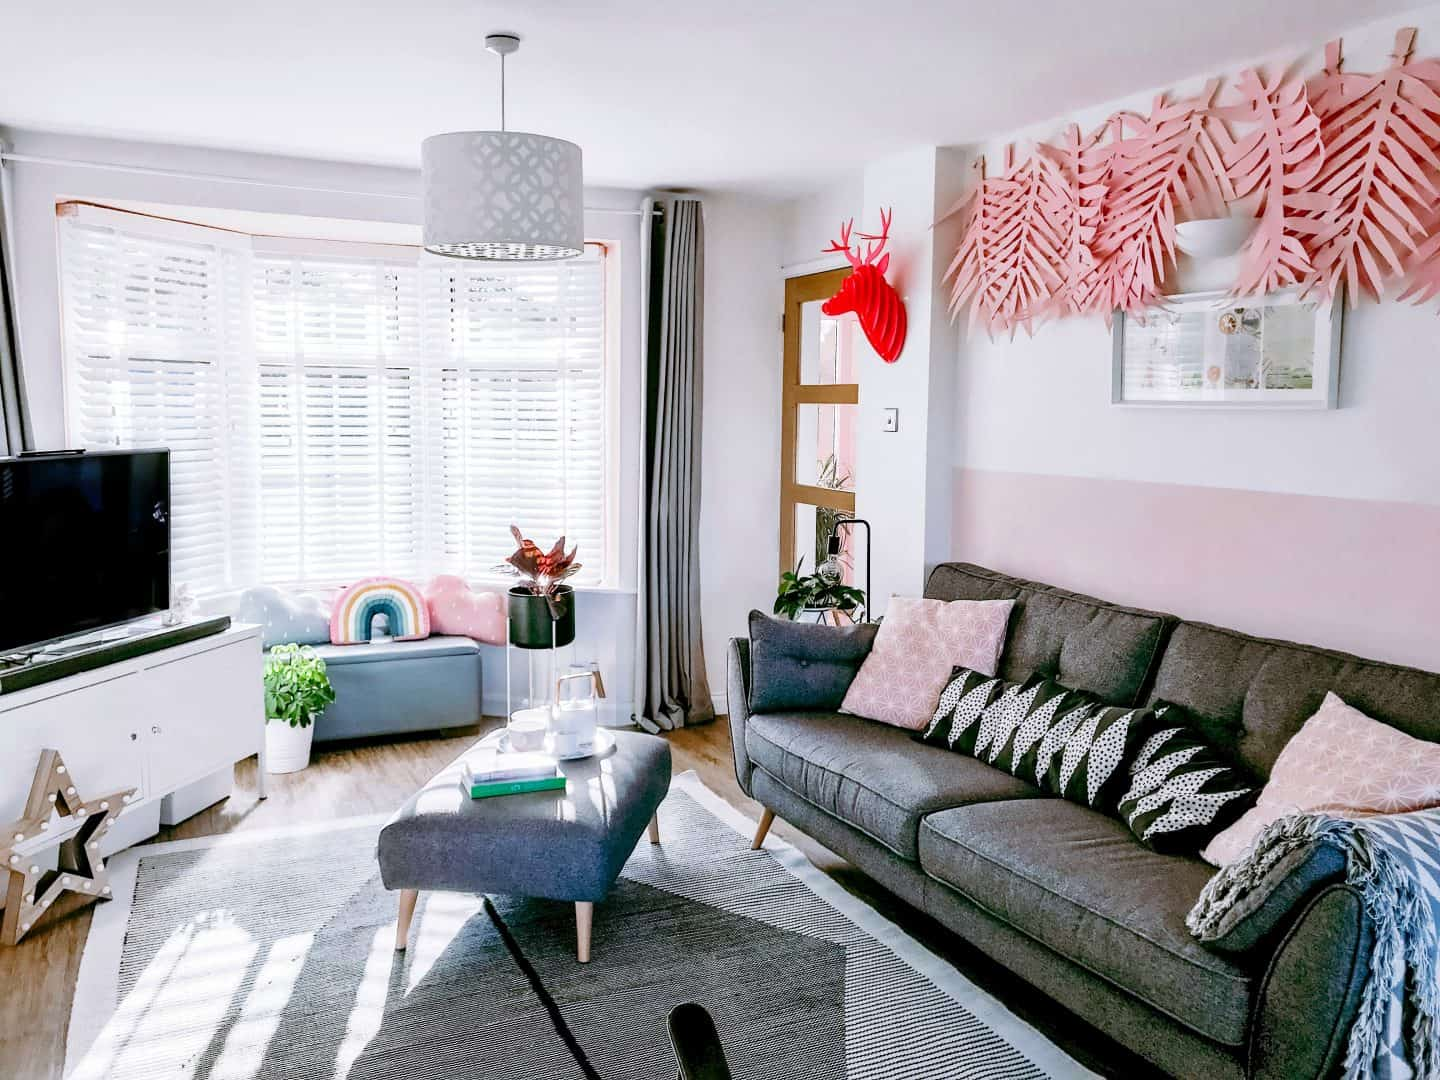 Monochrome lounge with pink acccents and white wooden blinds with tapes